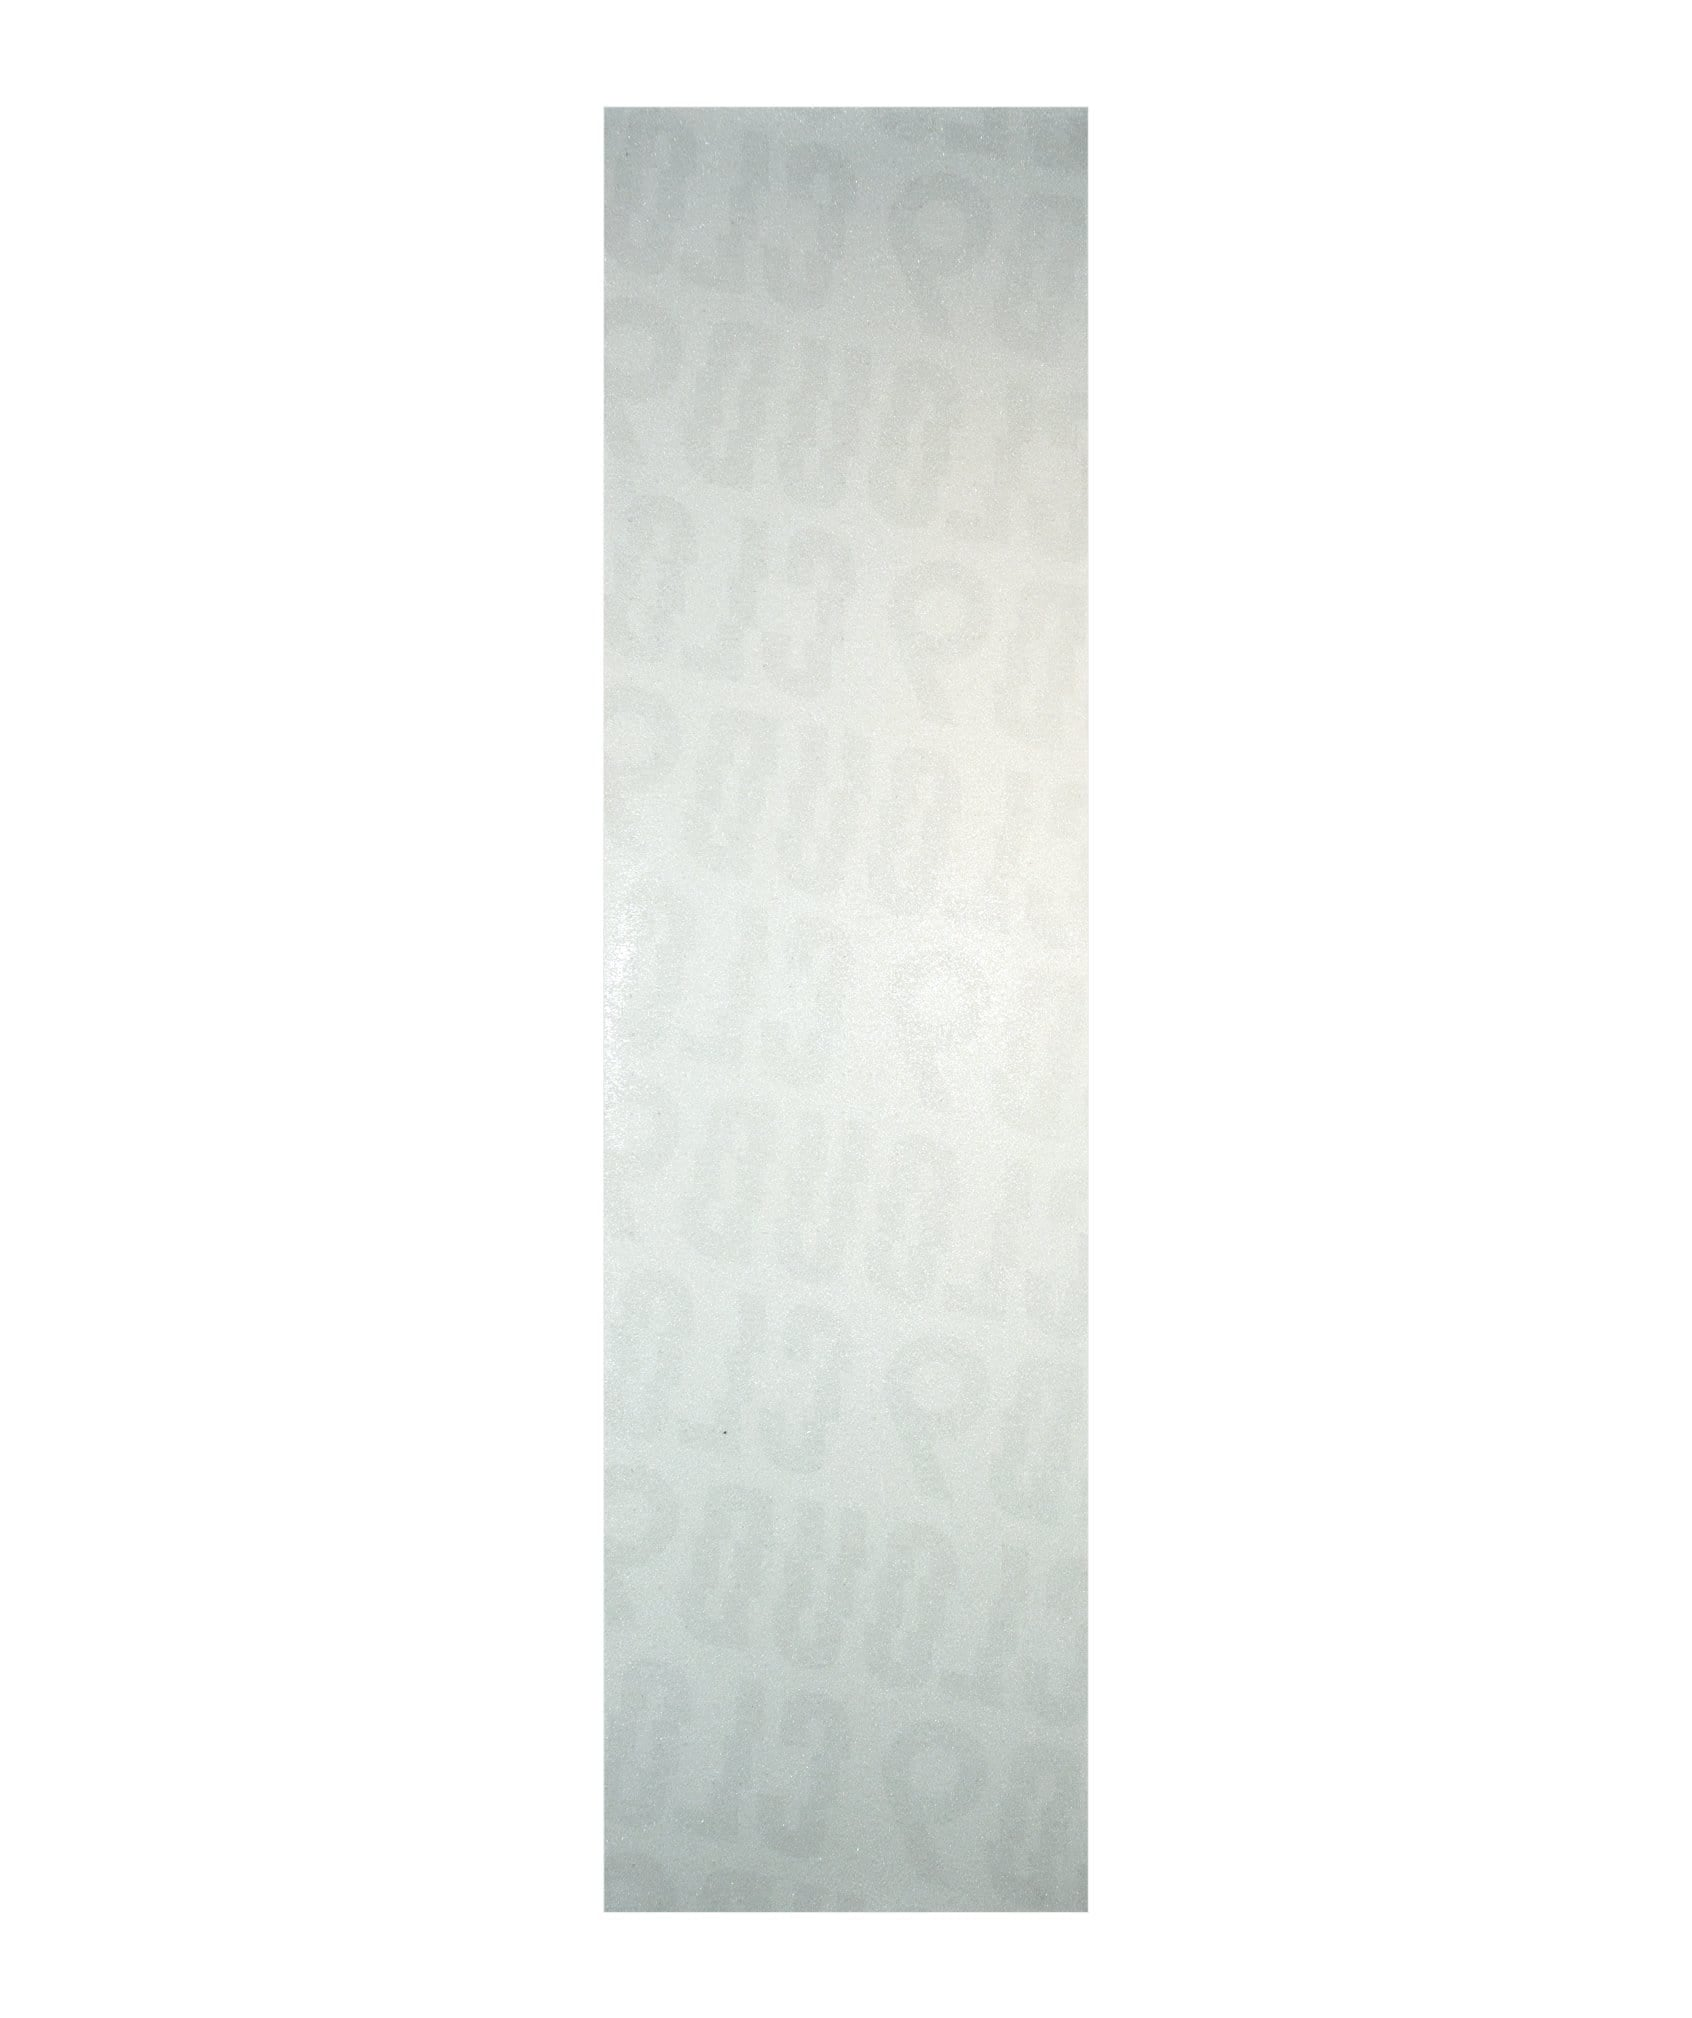 Cloud 9 Griptape Blank Clear Skateboard Grip Tape - Front